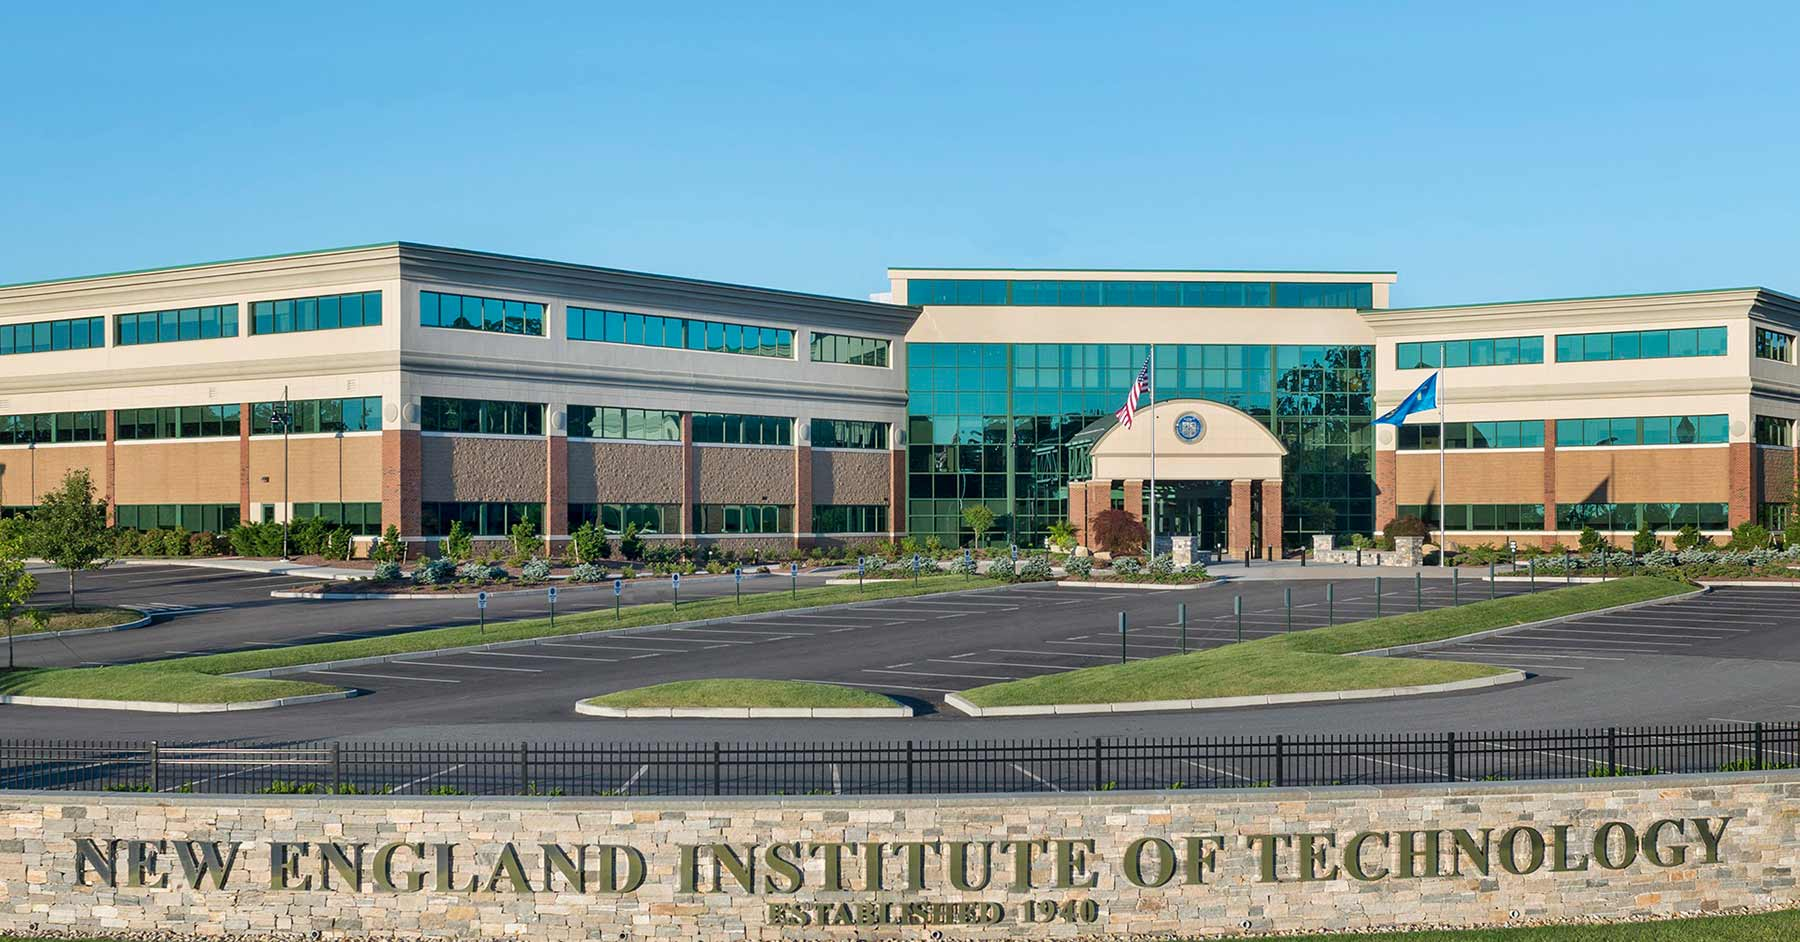 New England Institute Of Technology Niche